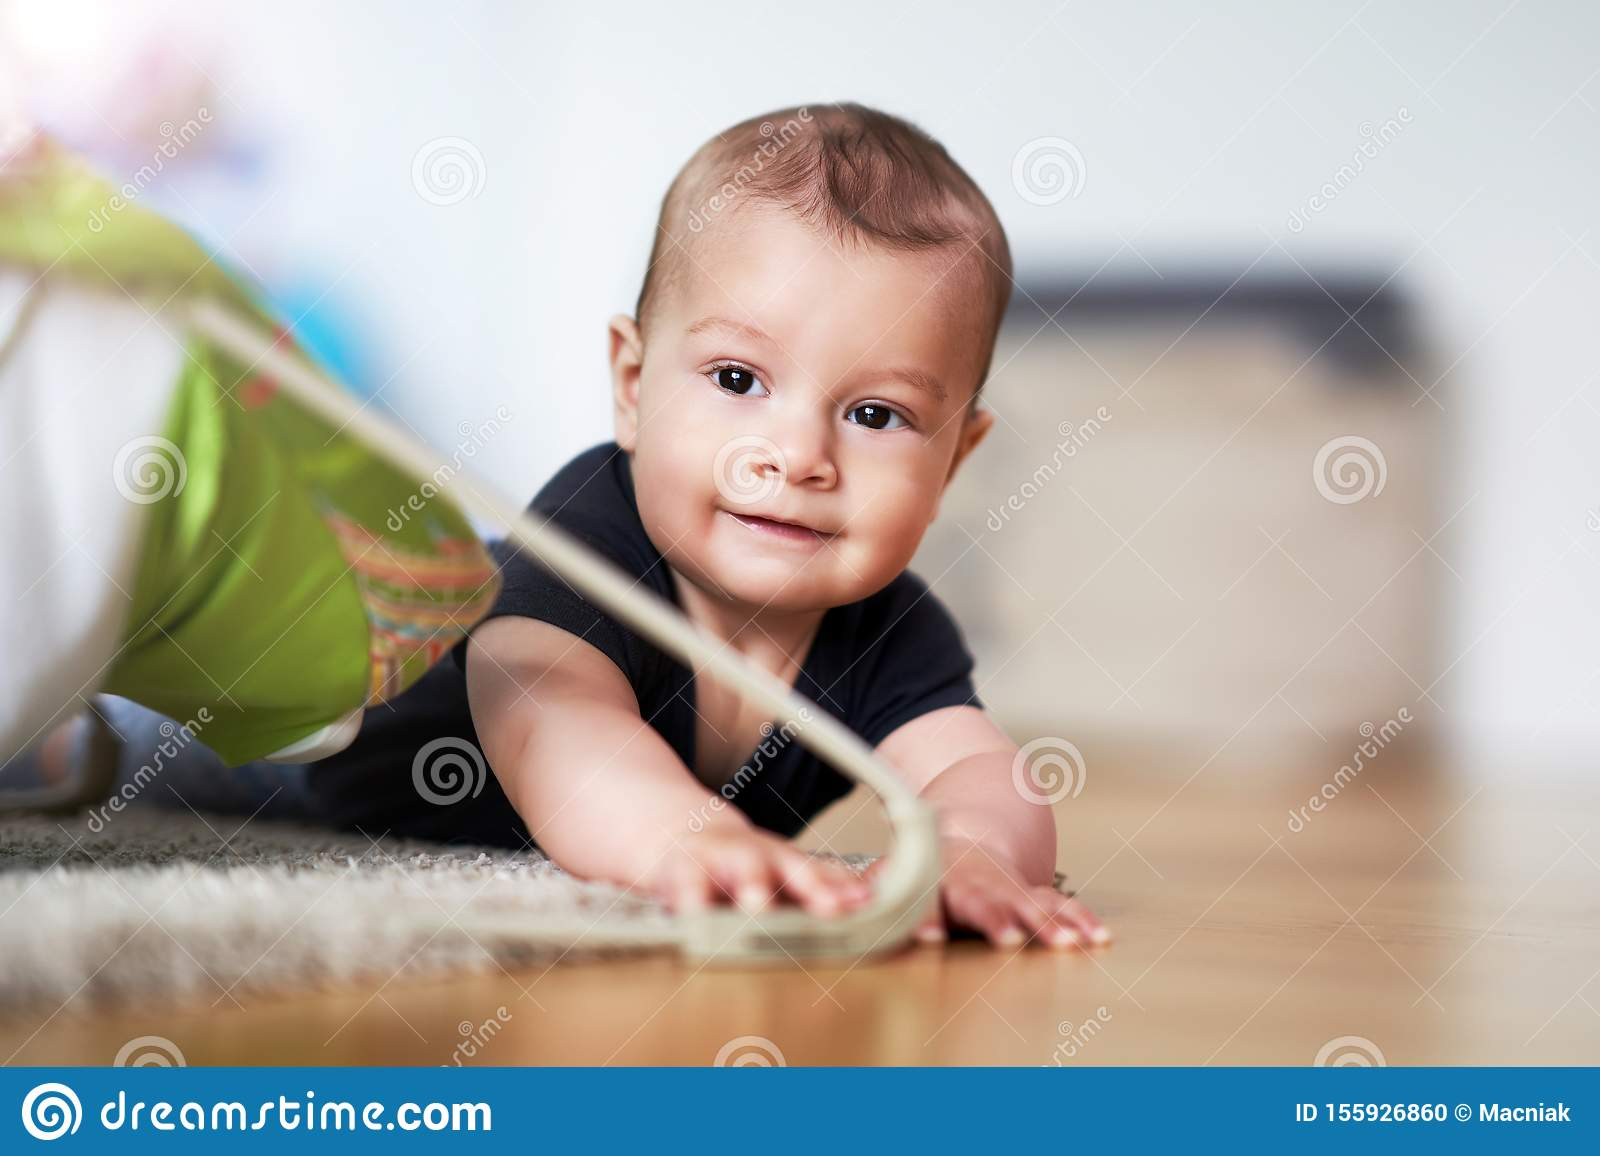 Cute smiling baby boy crawling on floor in living room